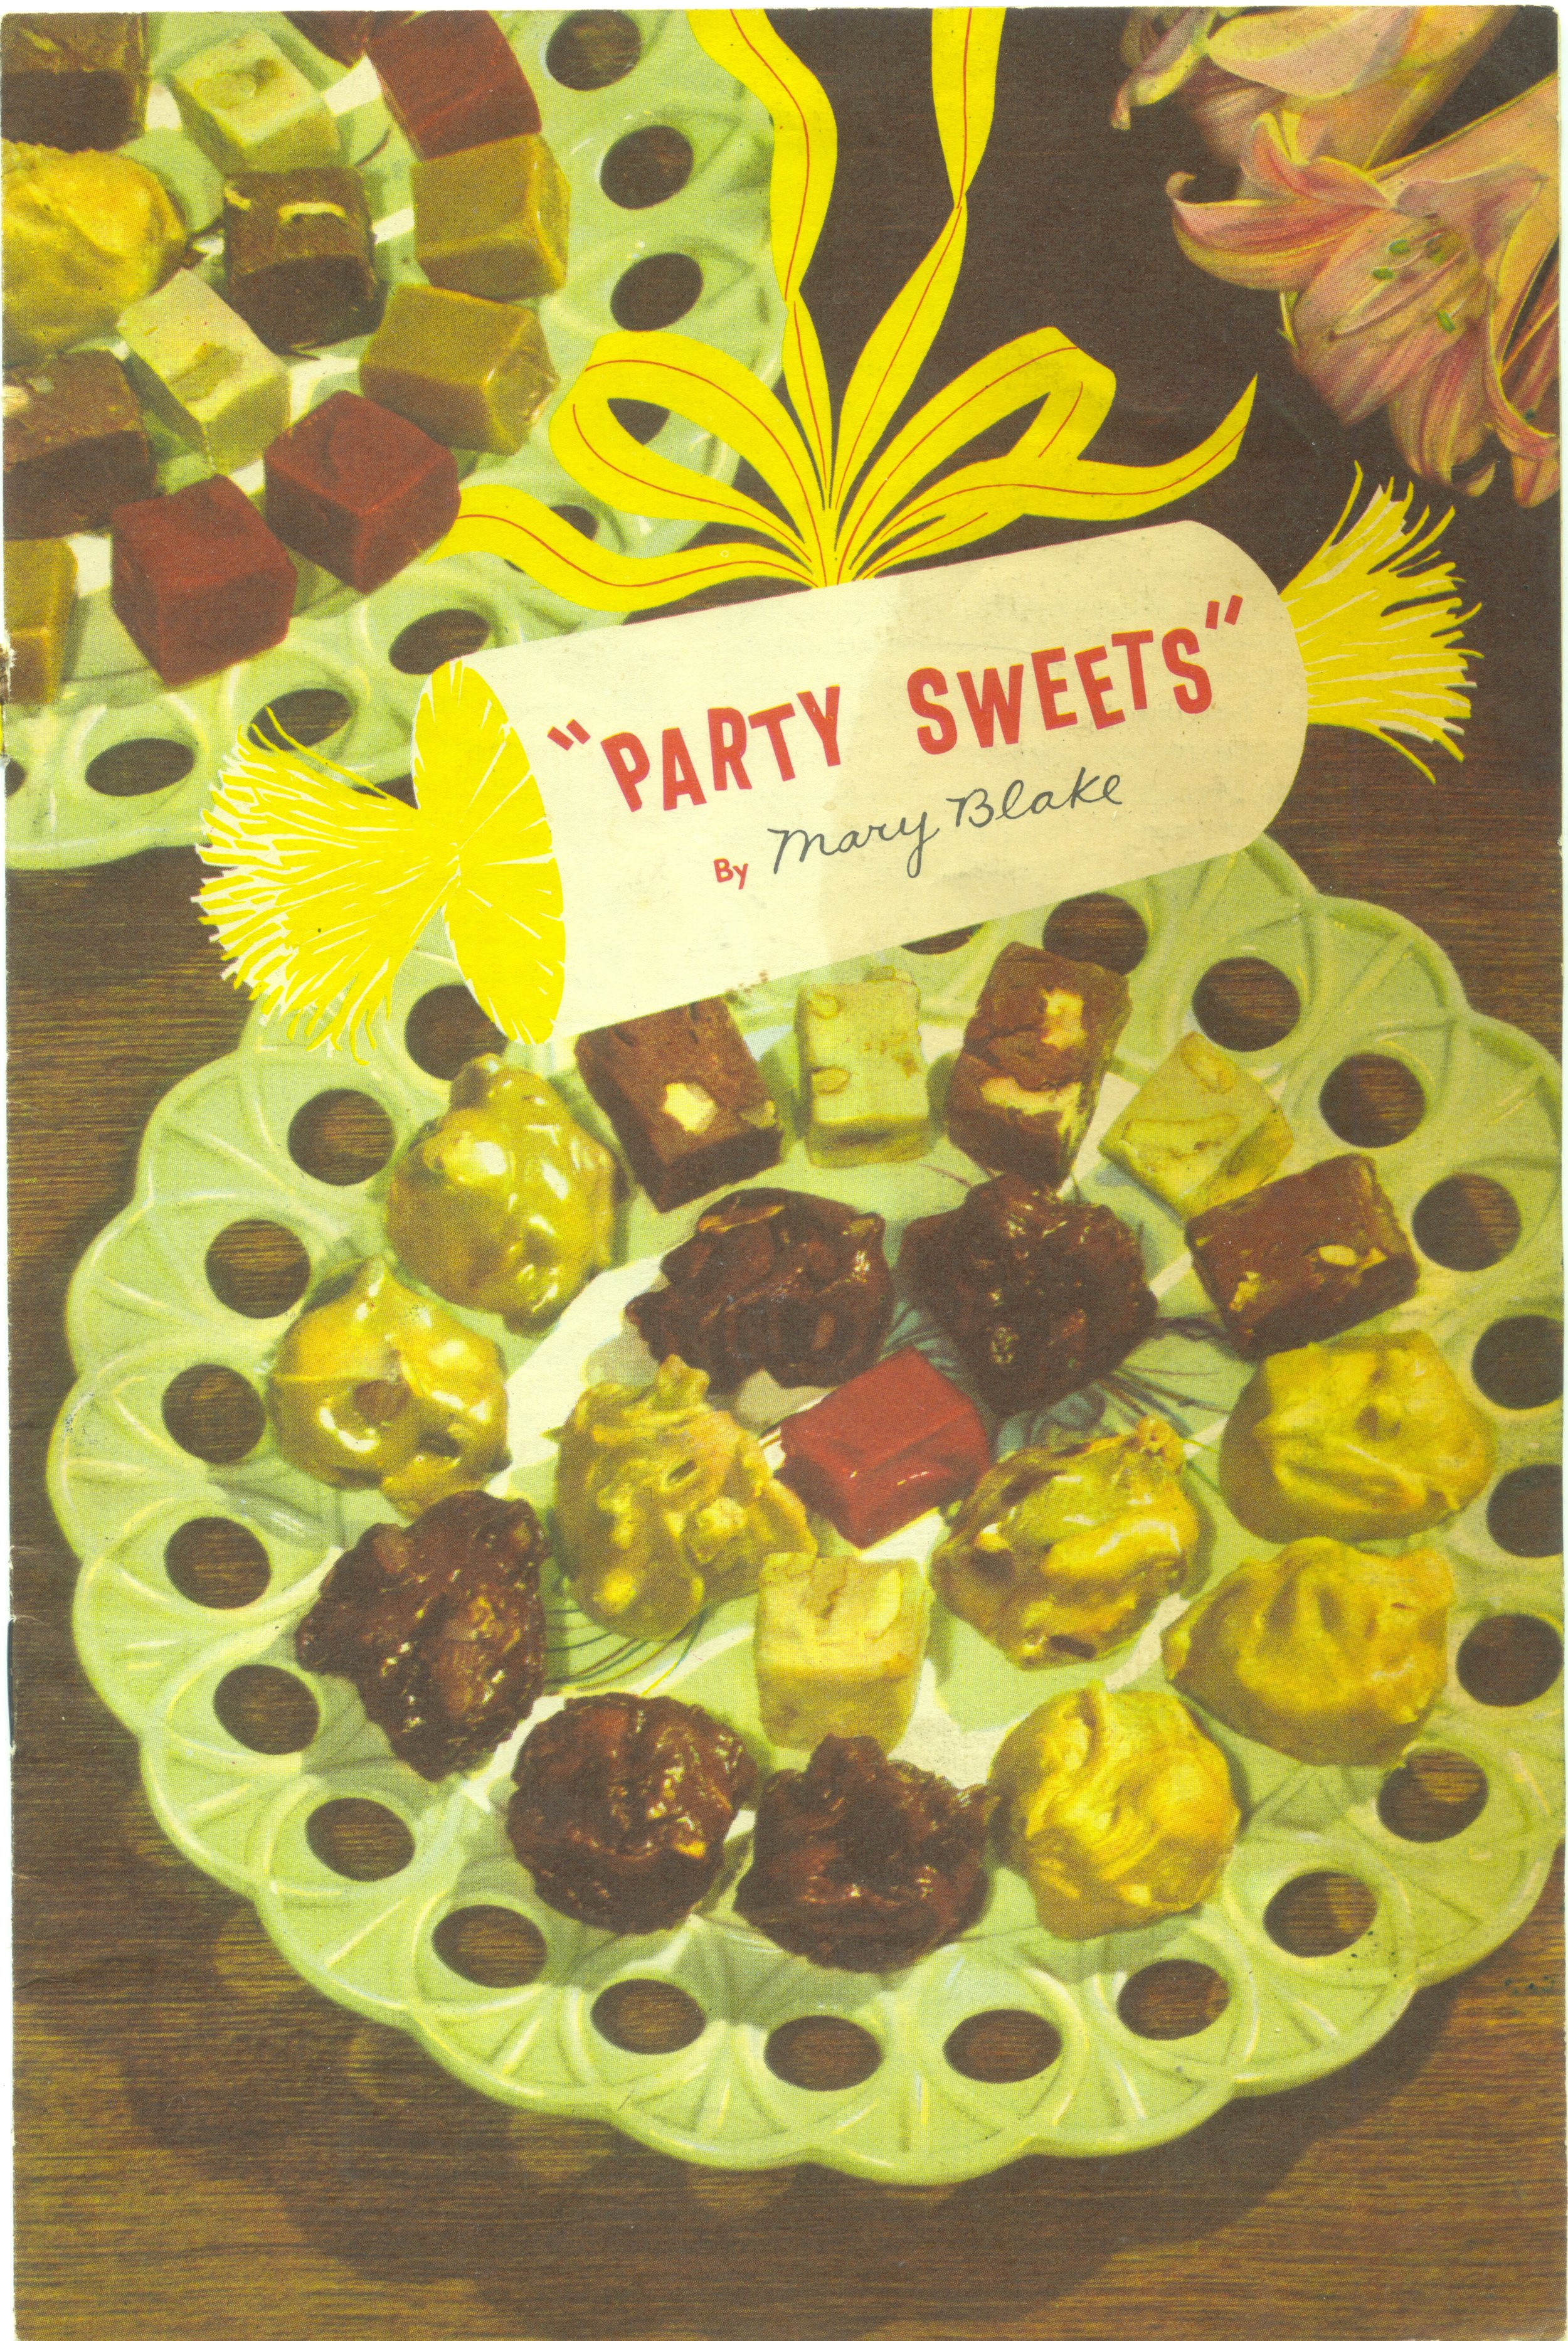 1955 Party Sweets